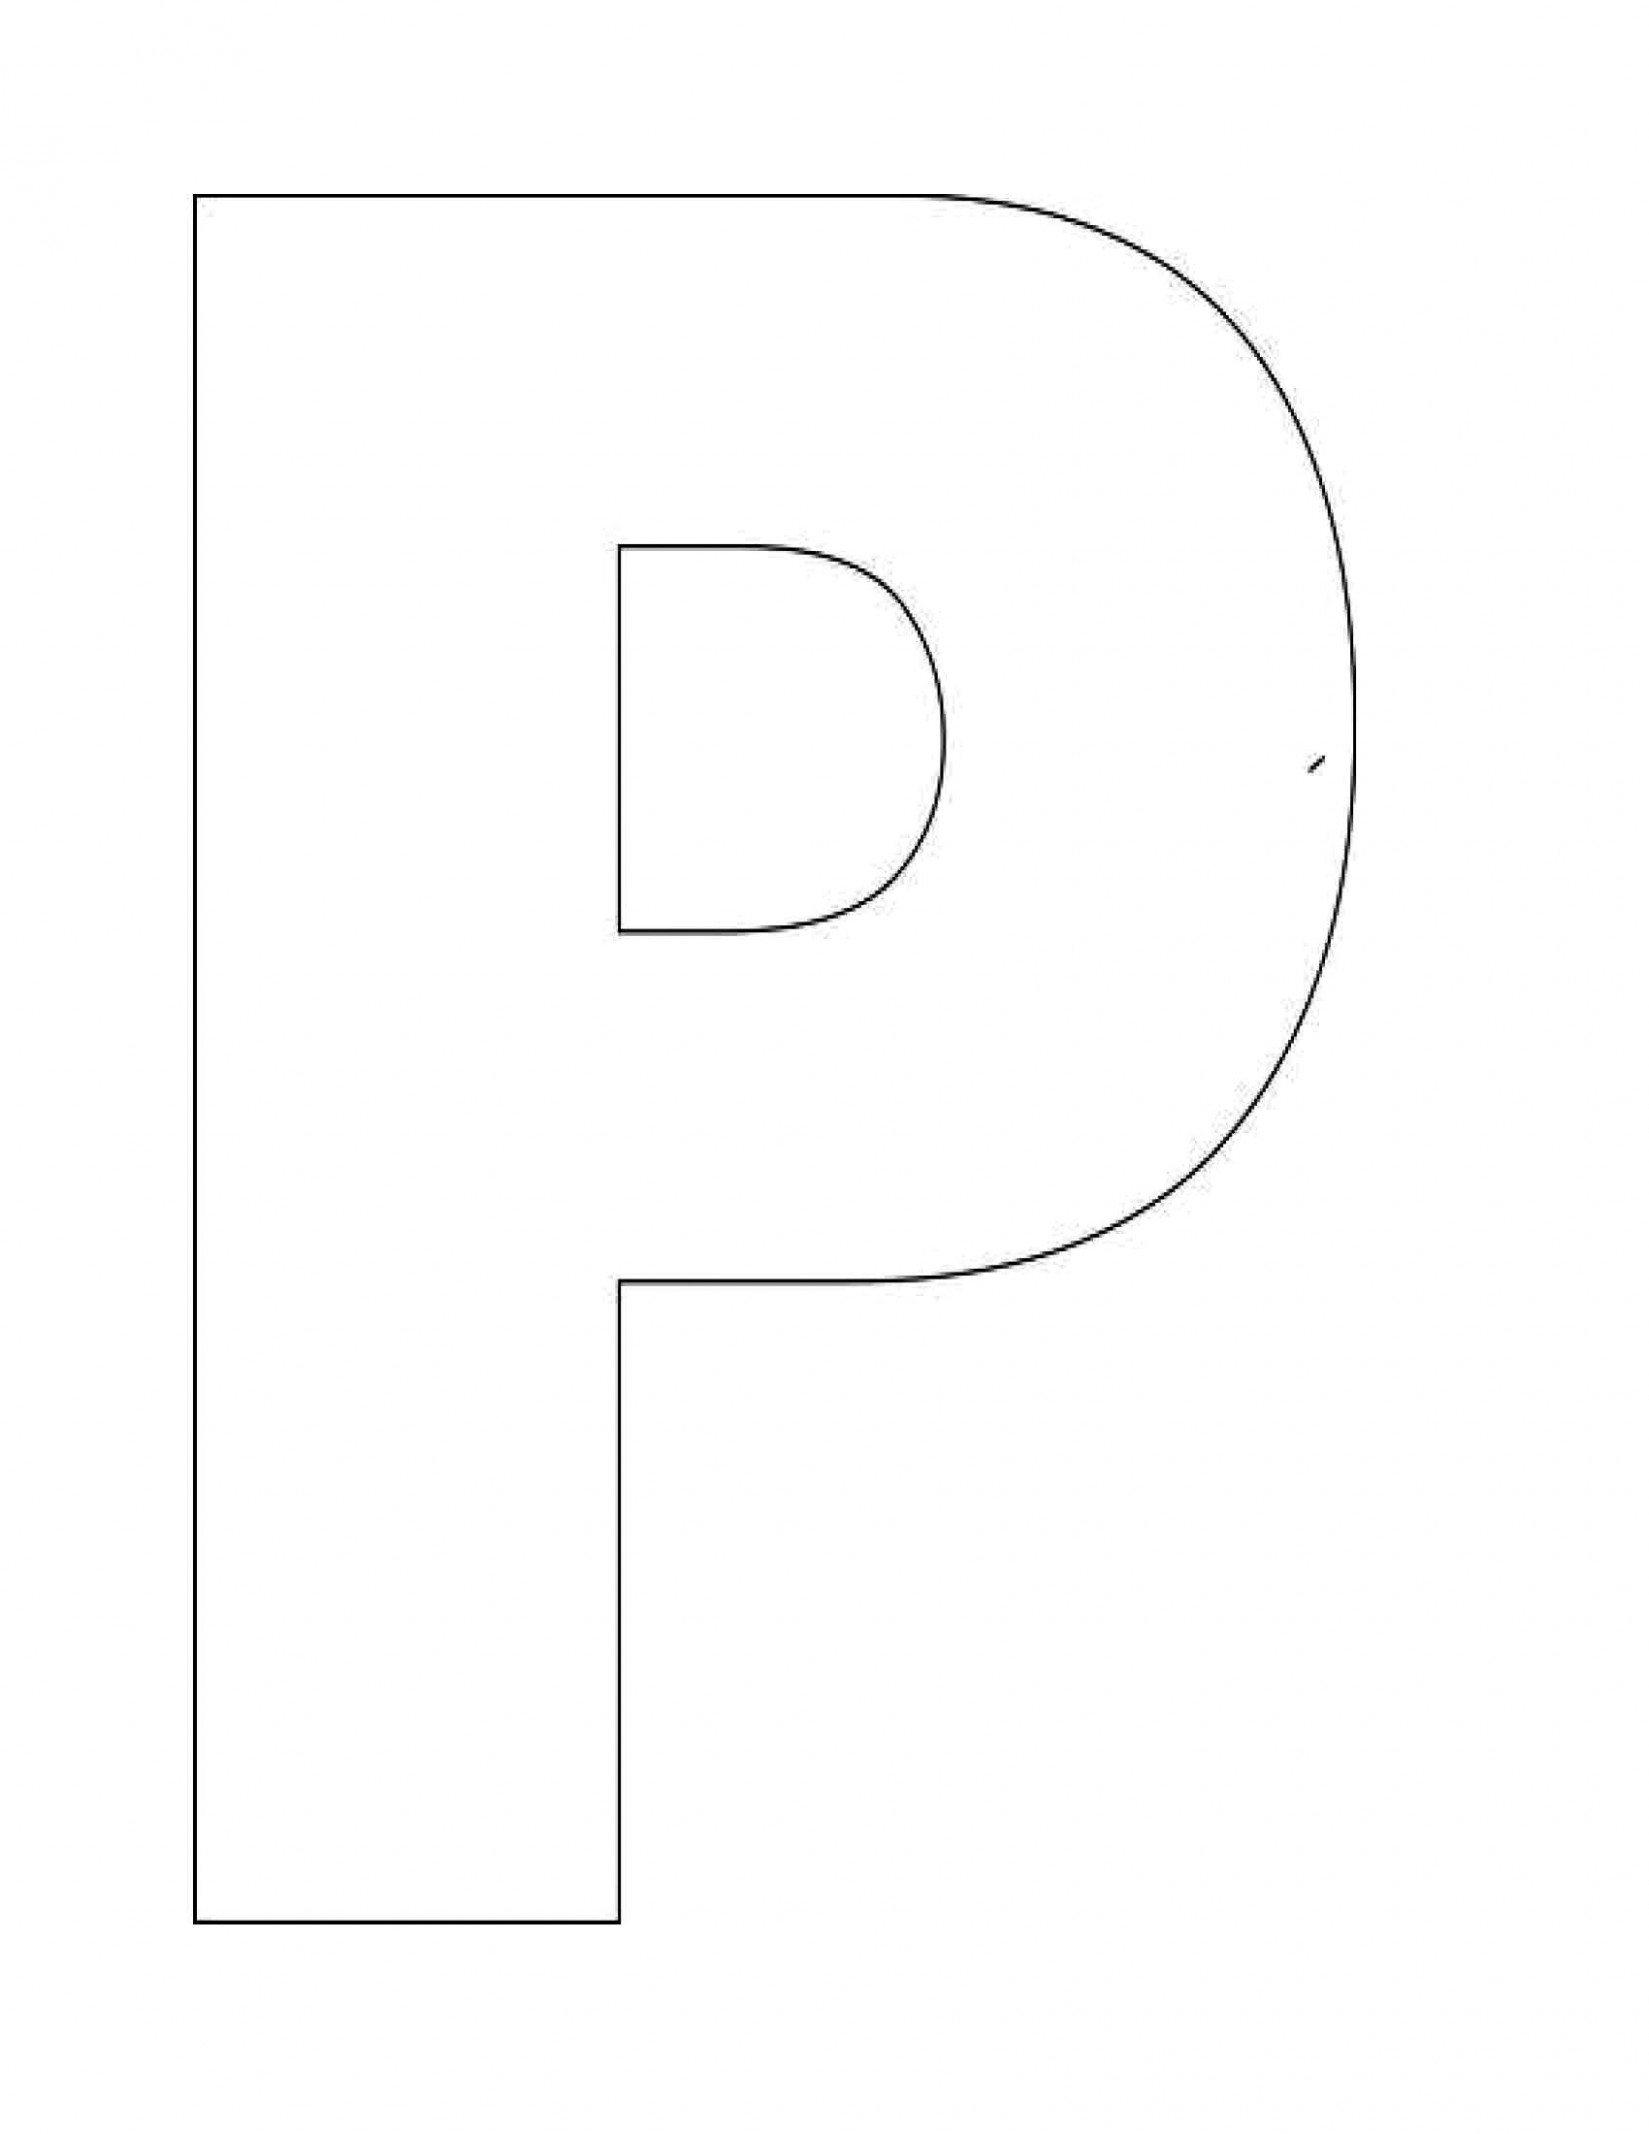 letter p template free  Image detail for -Alphabet Letter P Templates are perfect ..